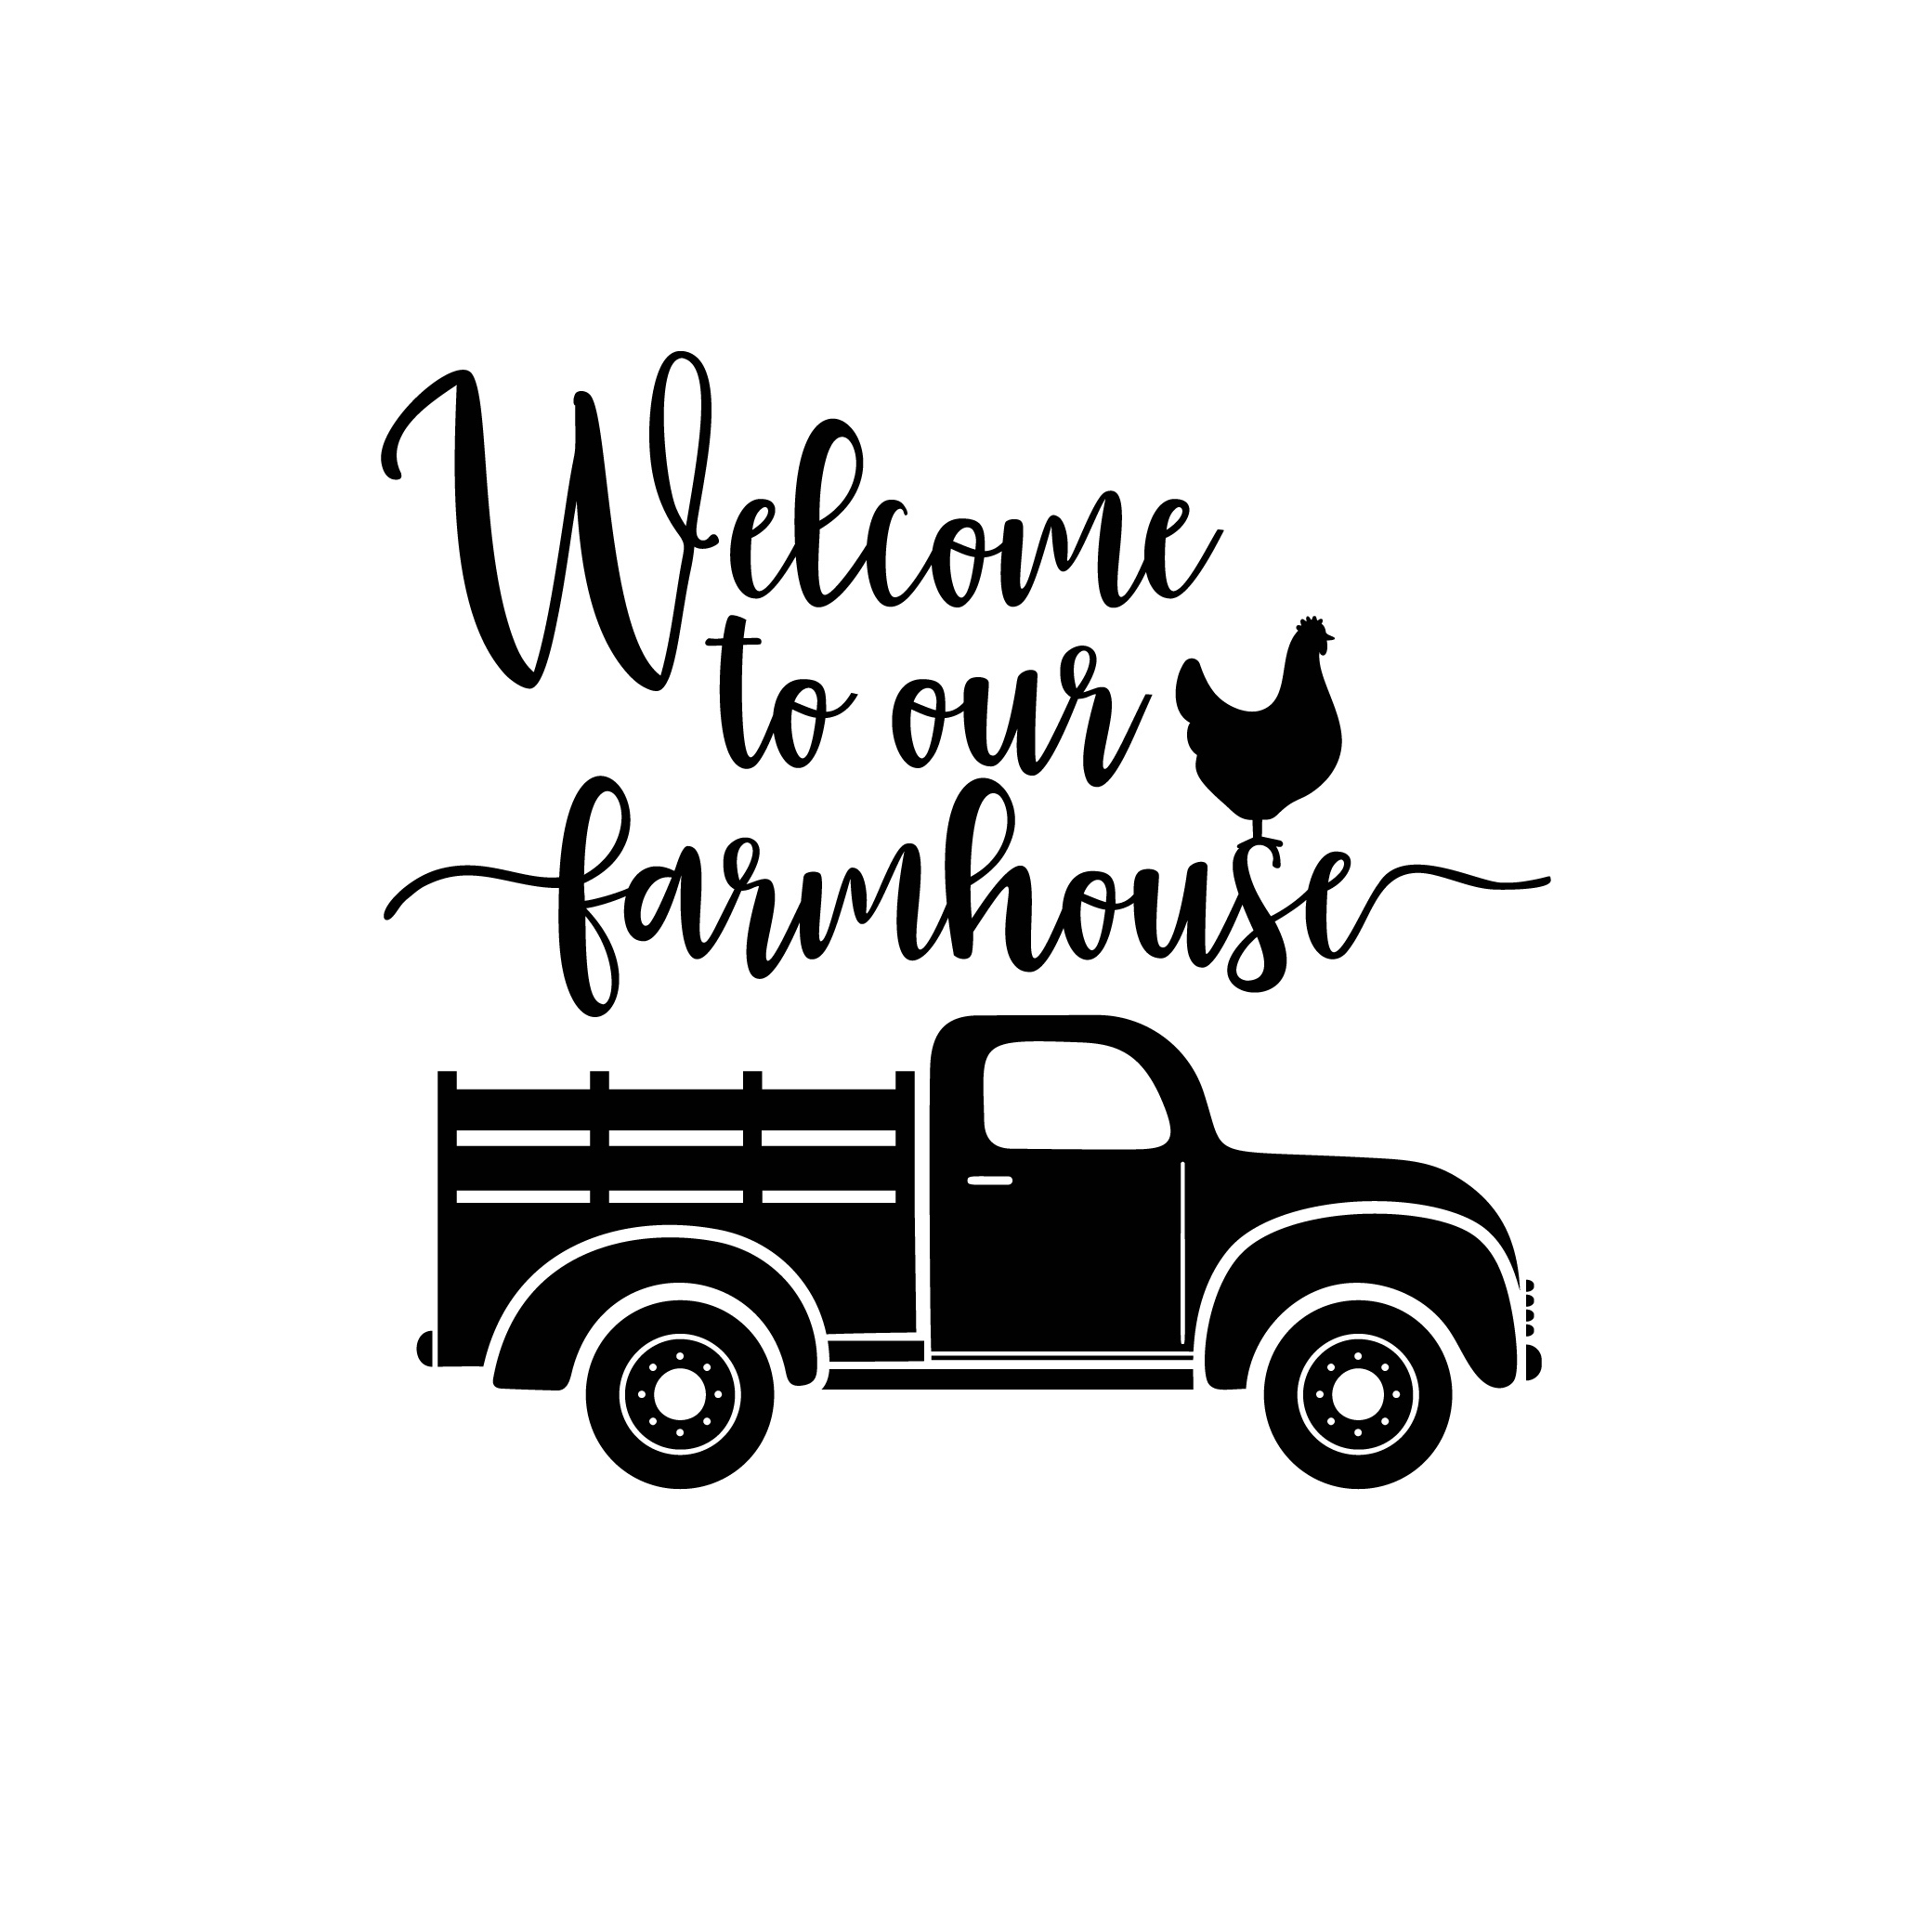 Welcome To Our Farmhouse Graphics Svg Dxf Eps By Vectordesign On